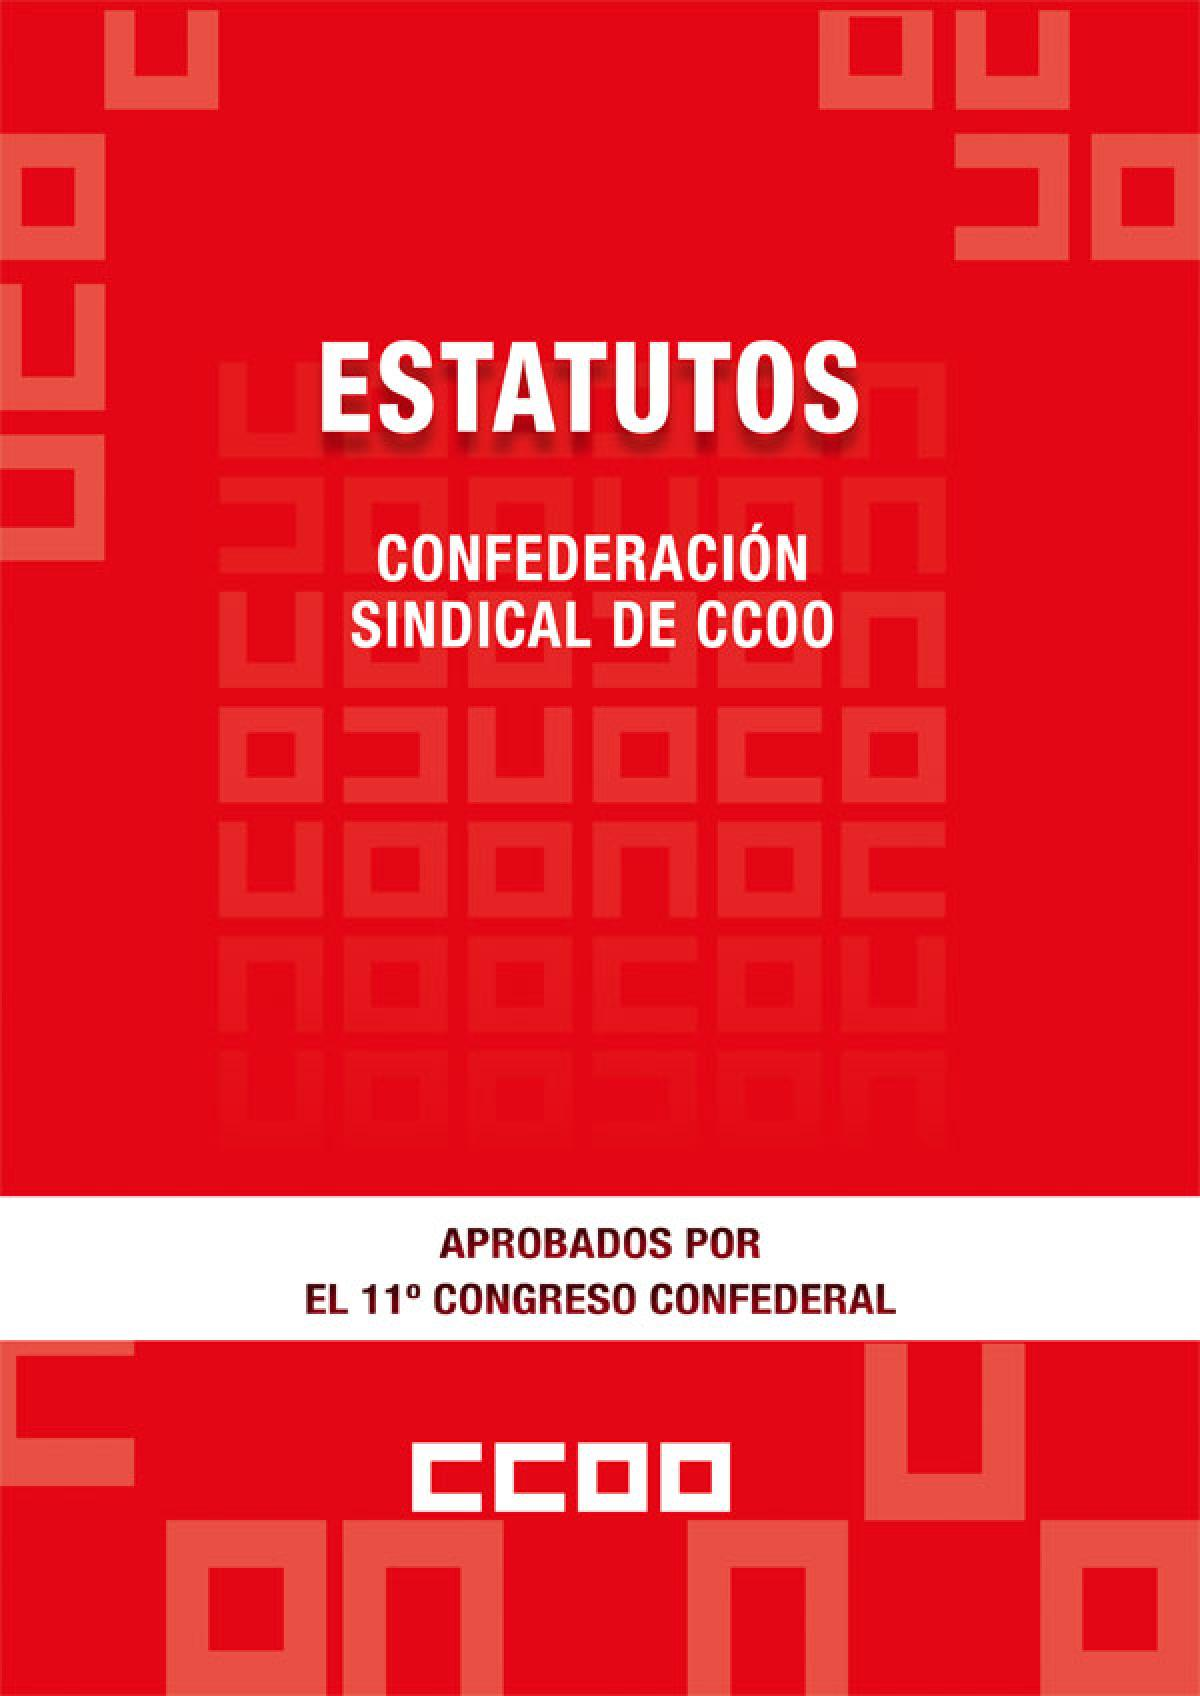 Estatutos XI Congreso Confederal